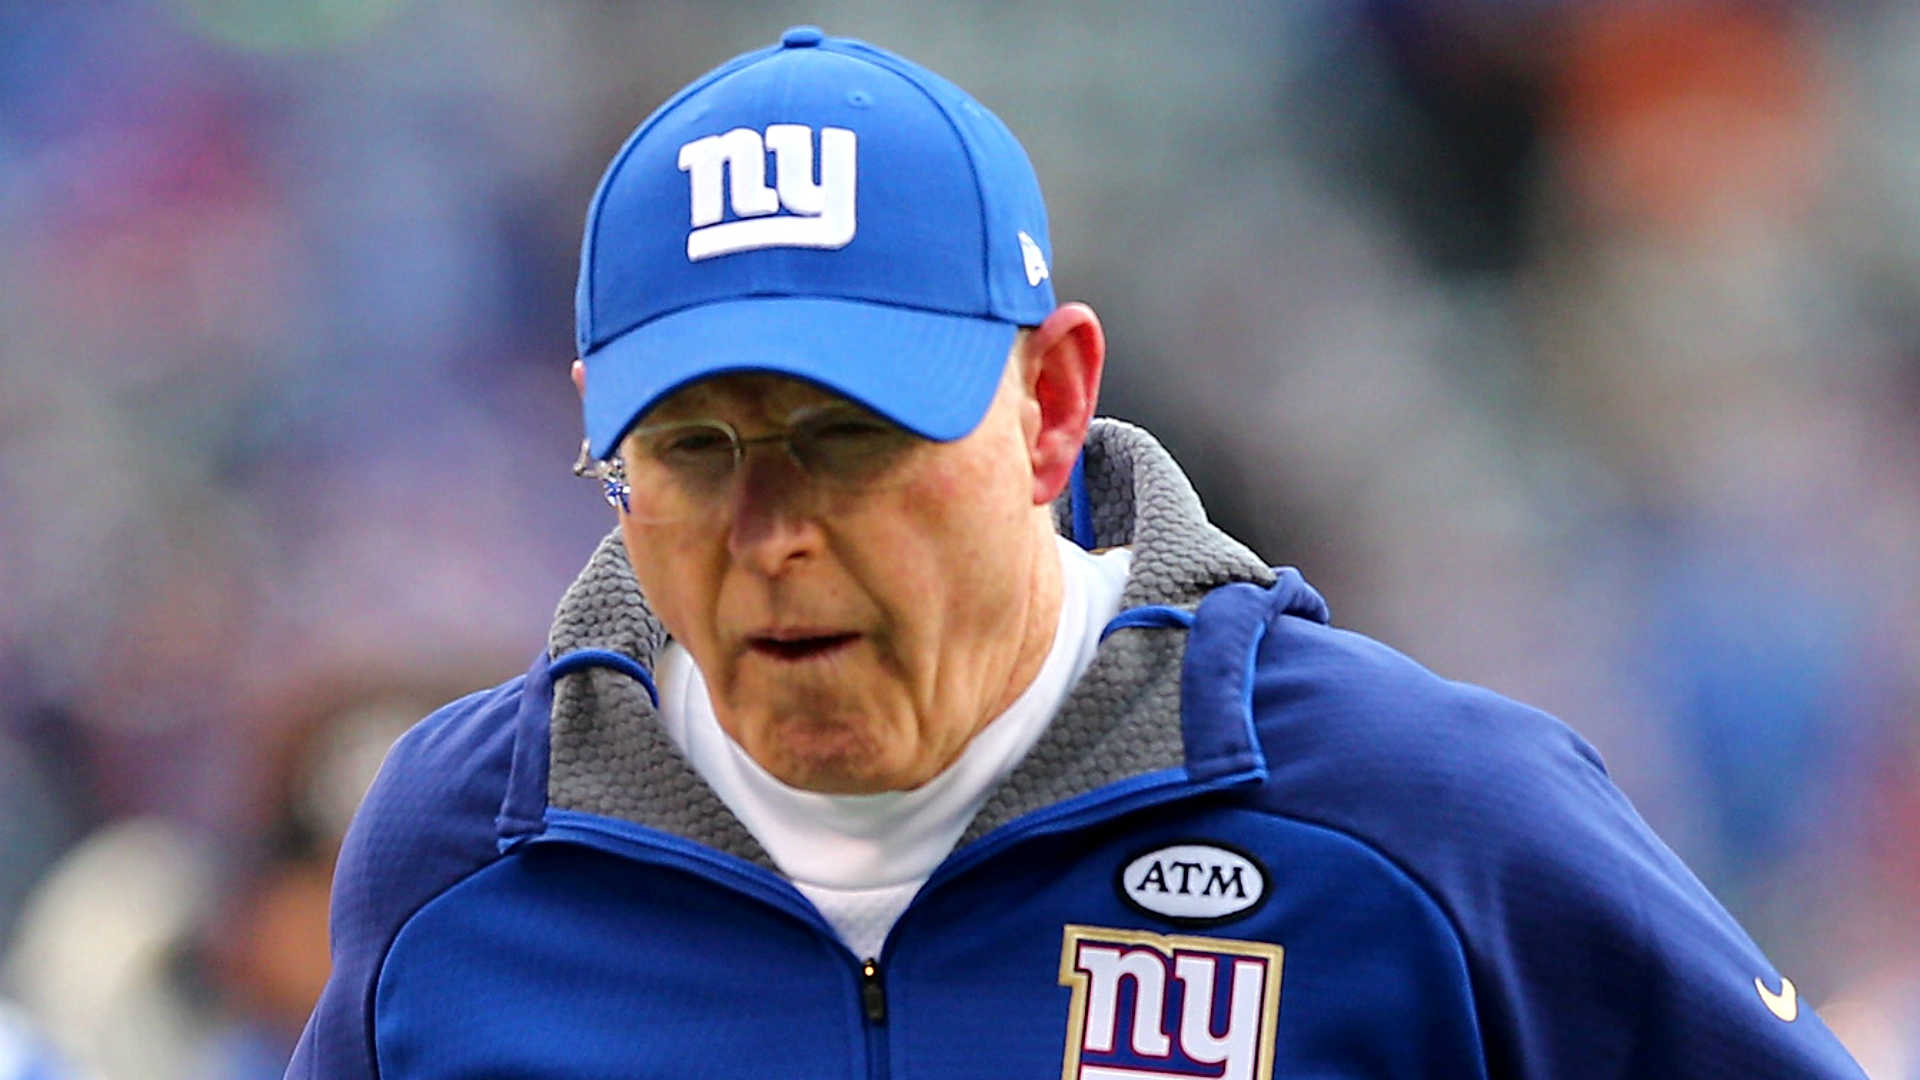 Tom-Coughlin-010315-USNews-Getty-FTR